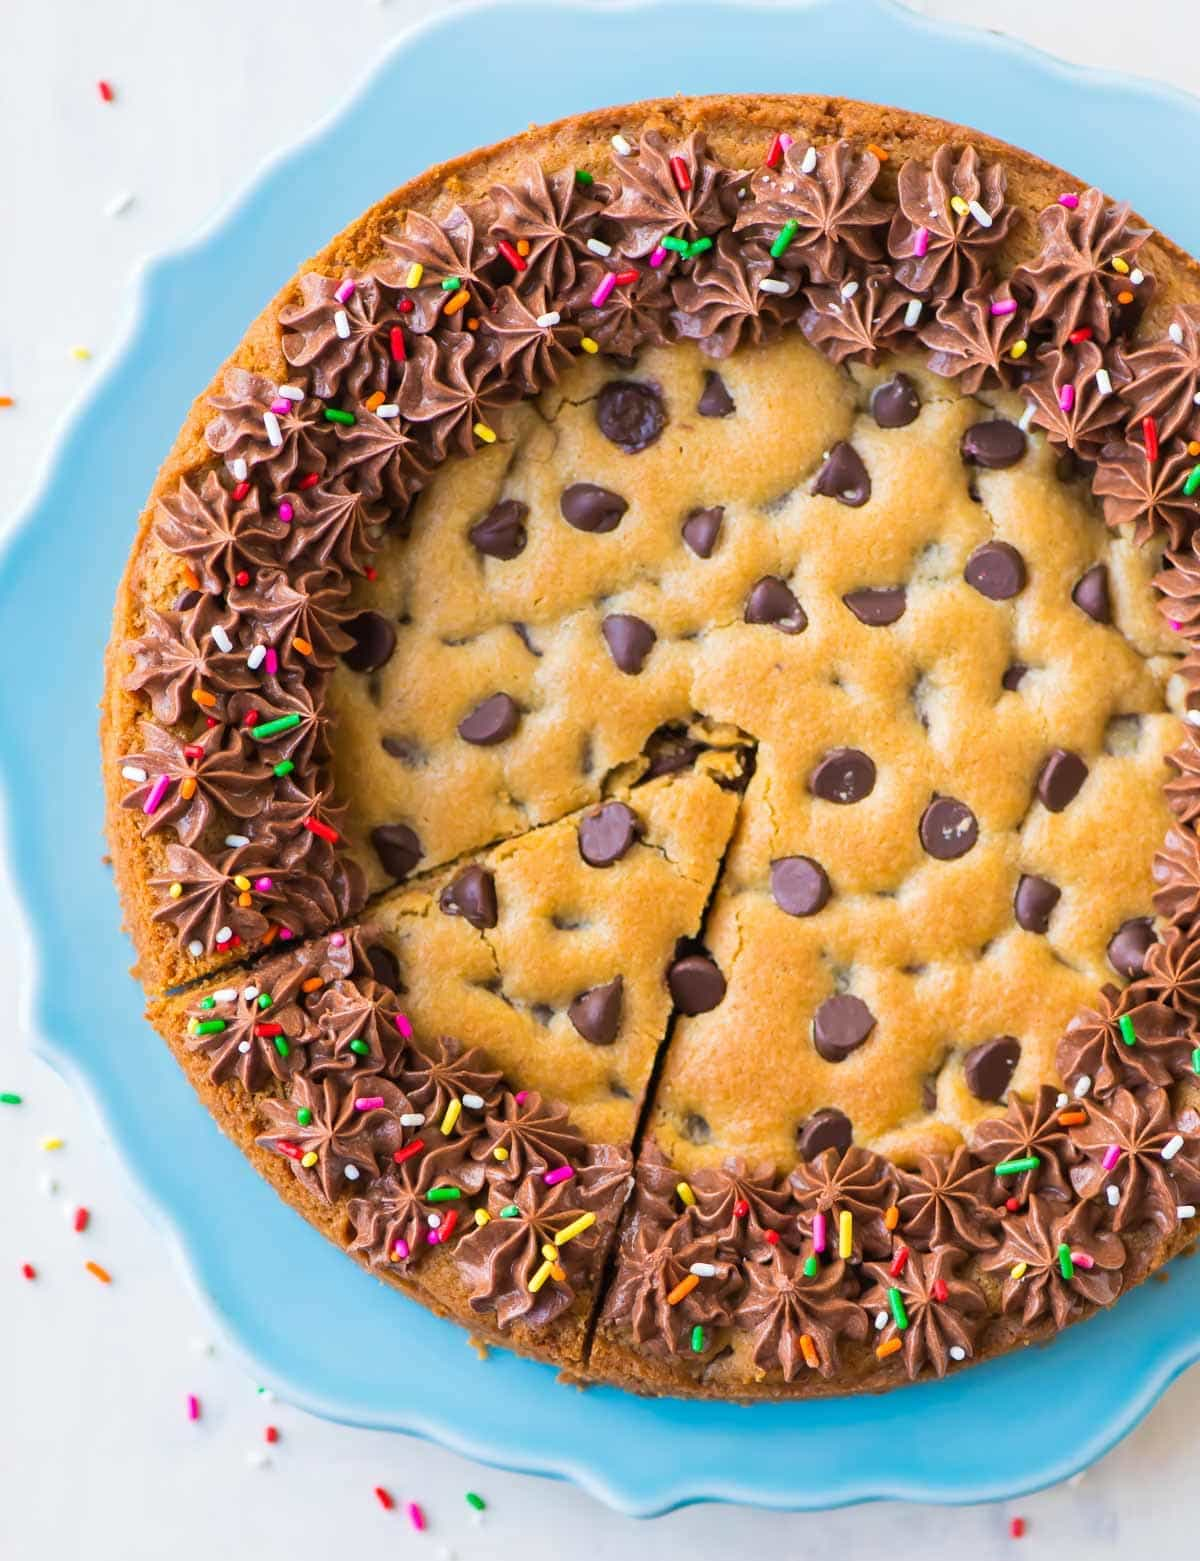 Chocolate Chip Cookie Cake Recipe With Chocolate Fudge Frosting